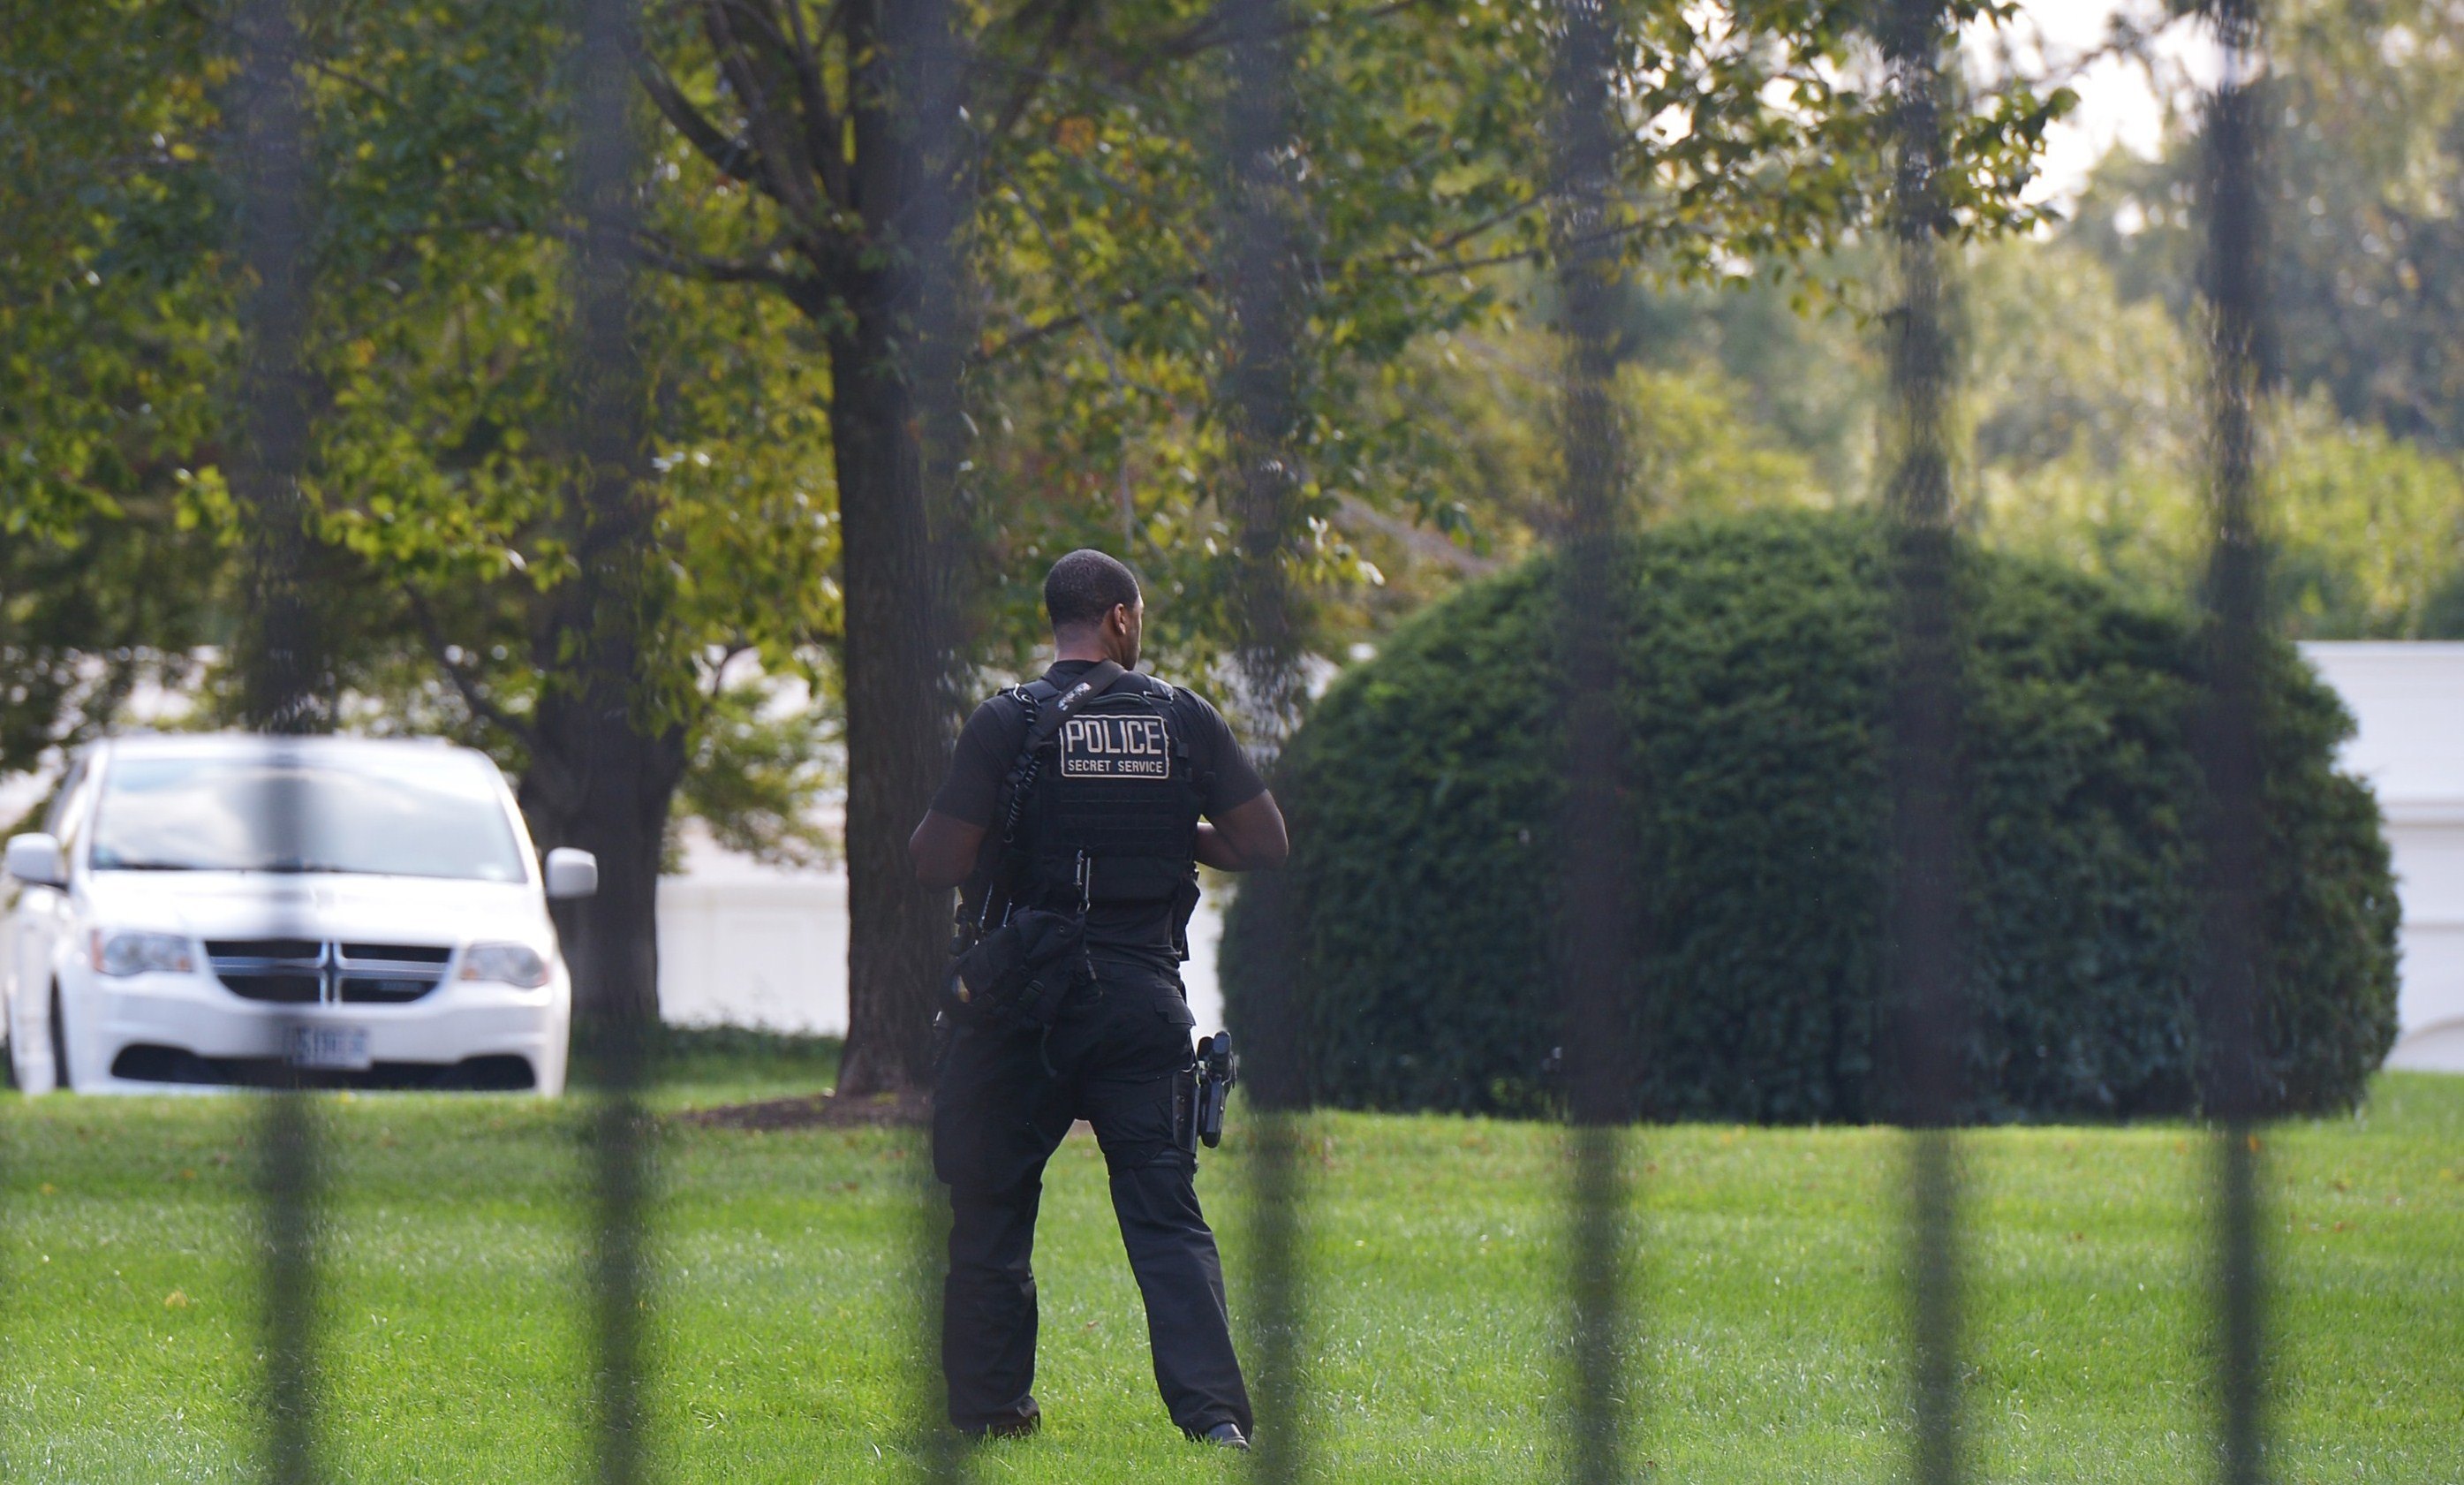 A member of Secret Service walks on the North Lawn of the White Houes on October 2, 2014 in Washington, DC. US President Barack Obama has appointed former Presidential Protective Division (PPD) director Joe Clancy as interim head of the Secret Service a day after Julia Pierson stepped down from the post.